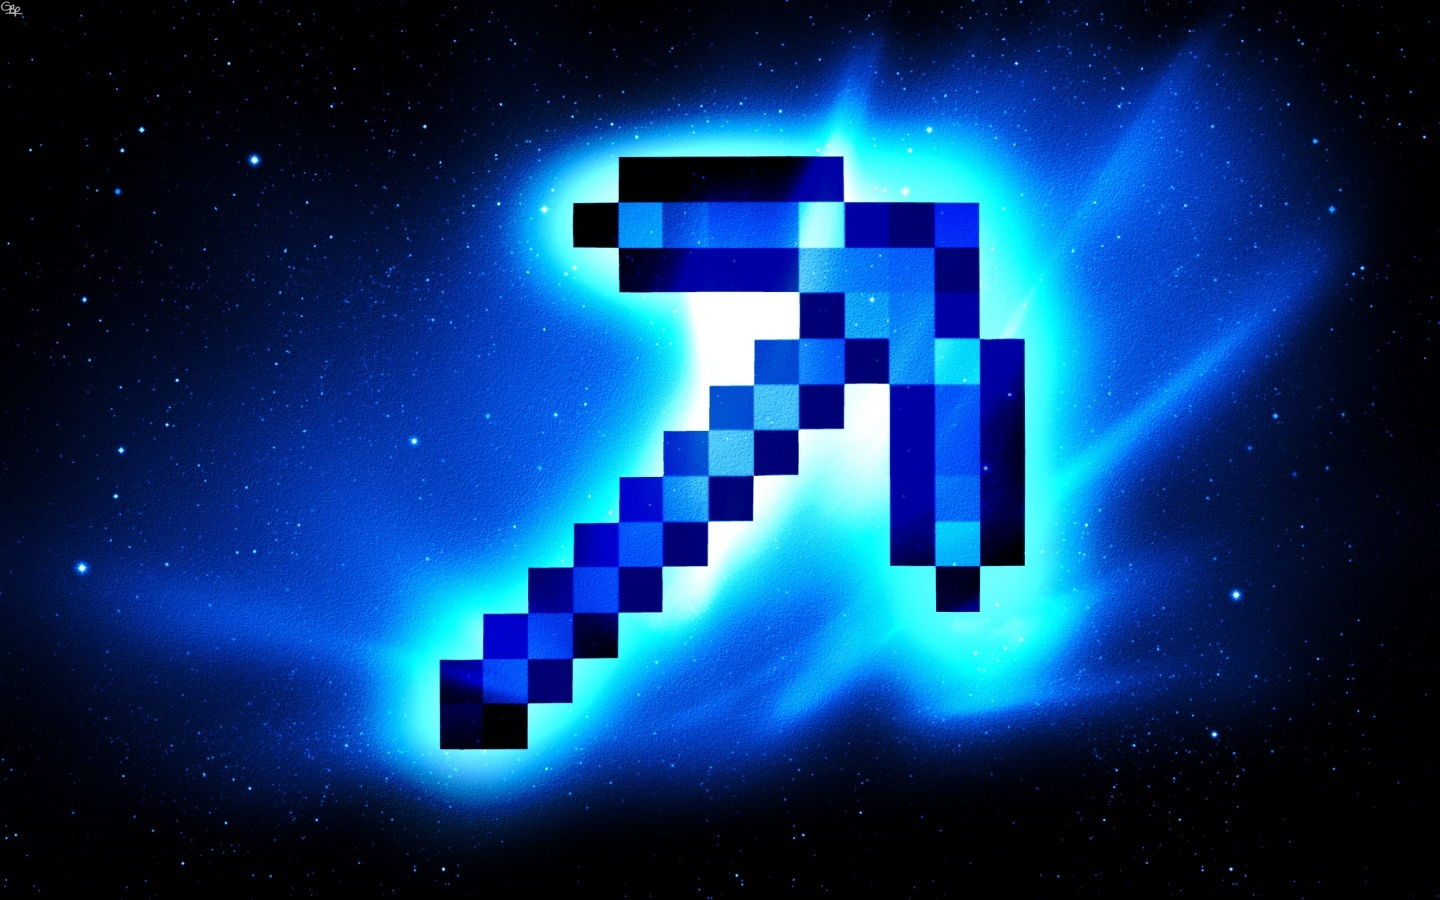 Wallpapers Minecraft Cool Wallpaper Maker Hd For Ipad Rooms Iphone Mod 1440x900